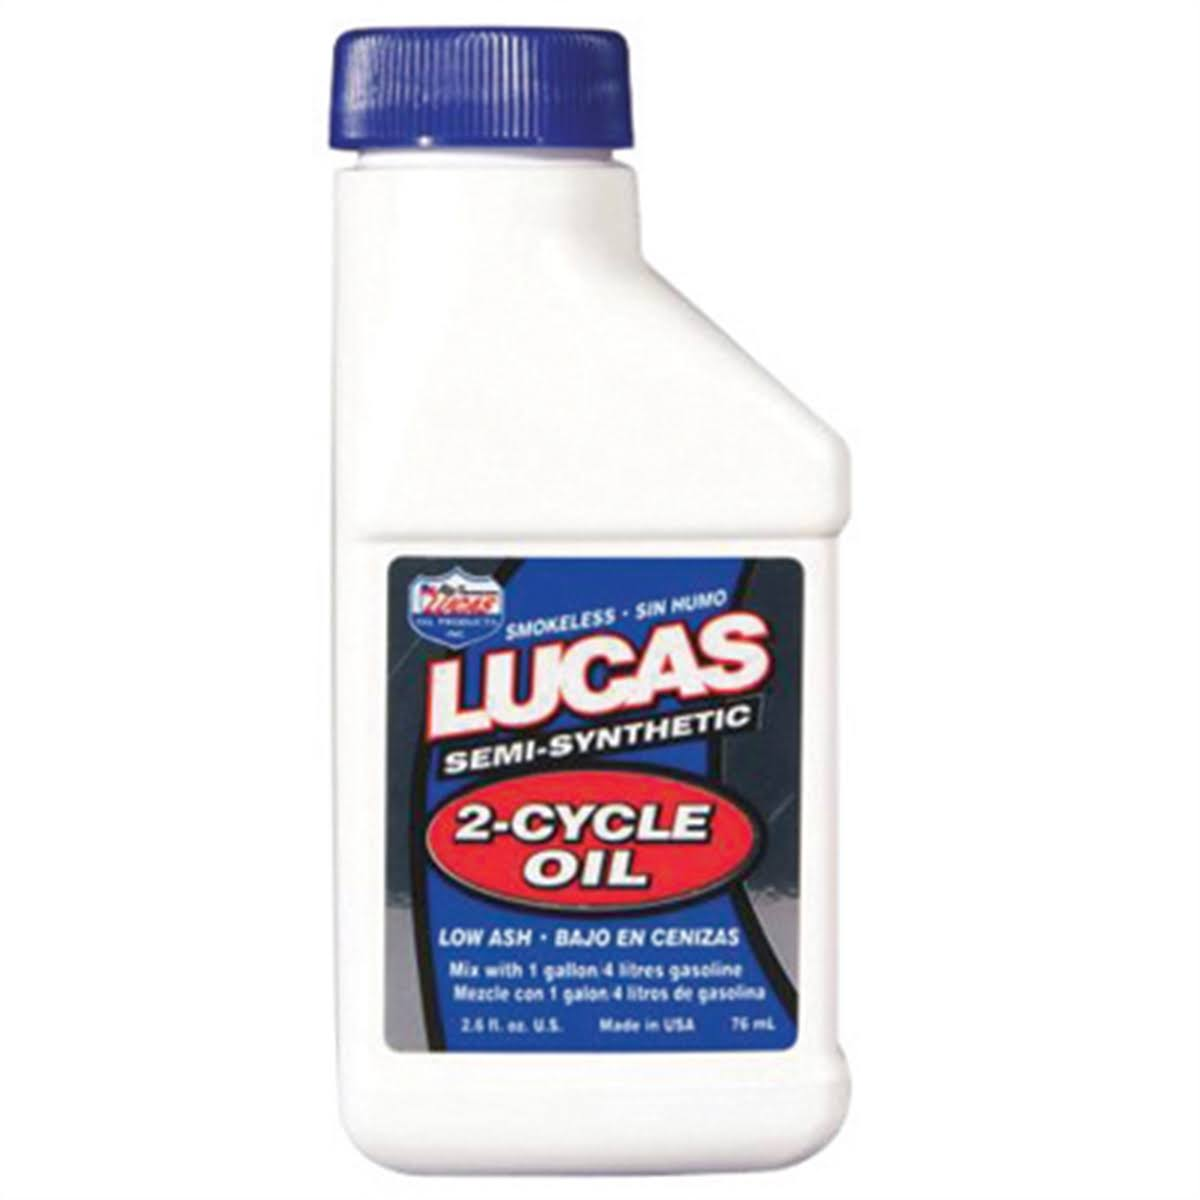 Lucas Oil 10058 Semi-Synthetic 2 Cycle Oil - 2.6oz